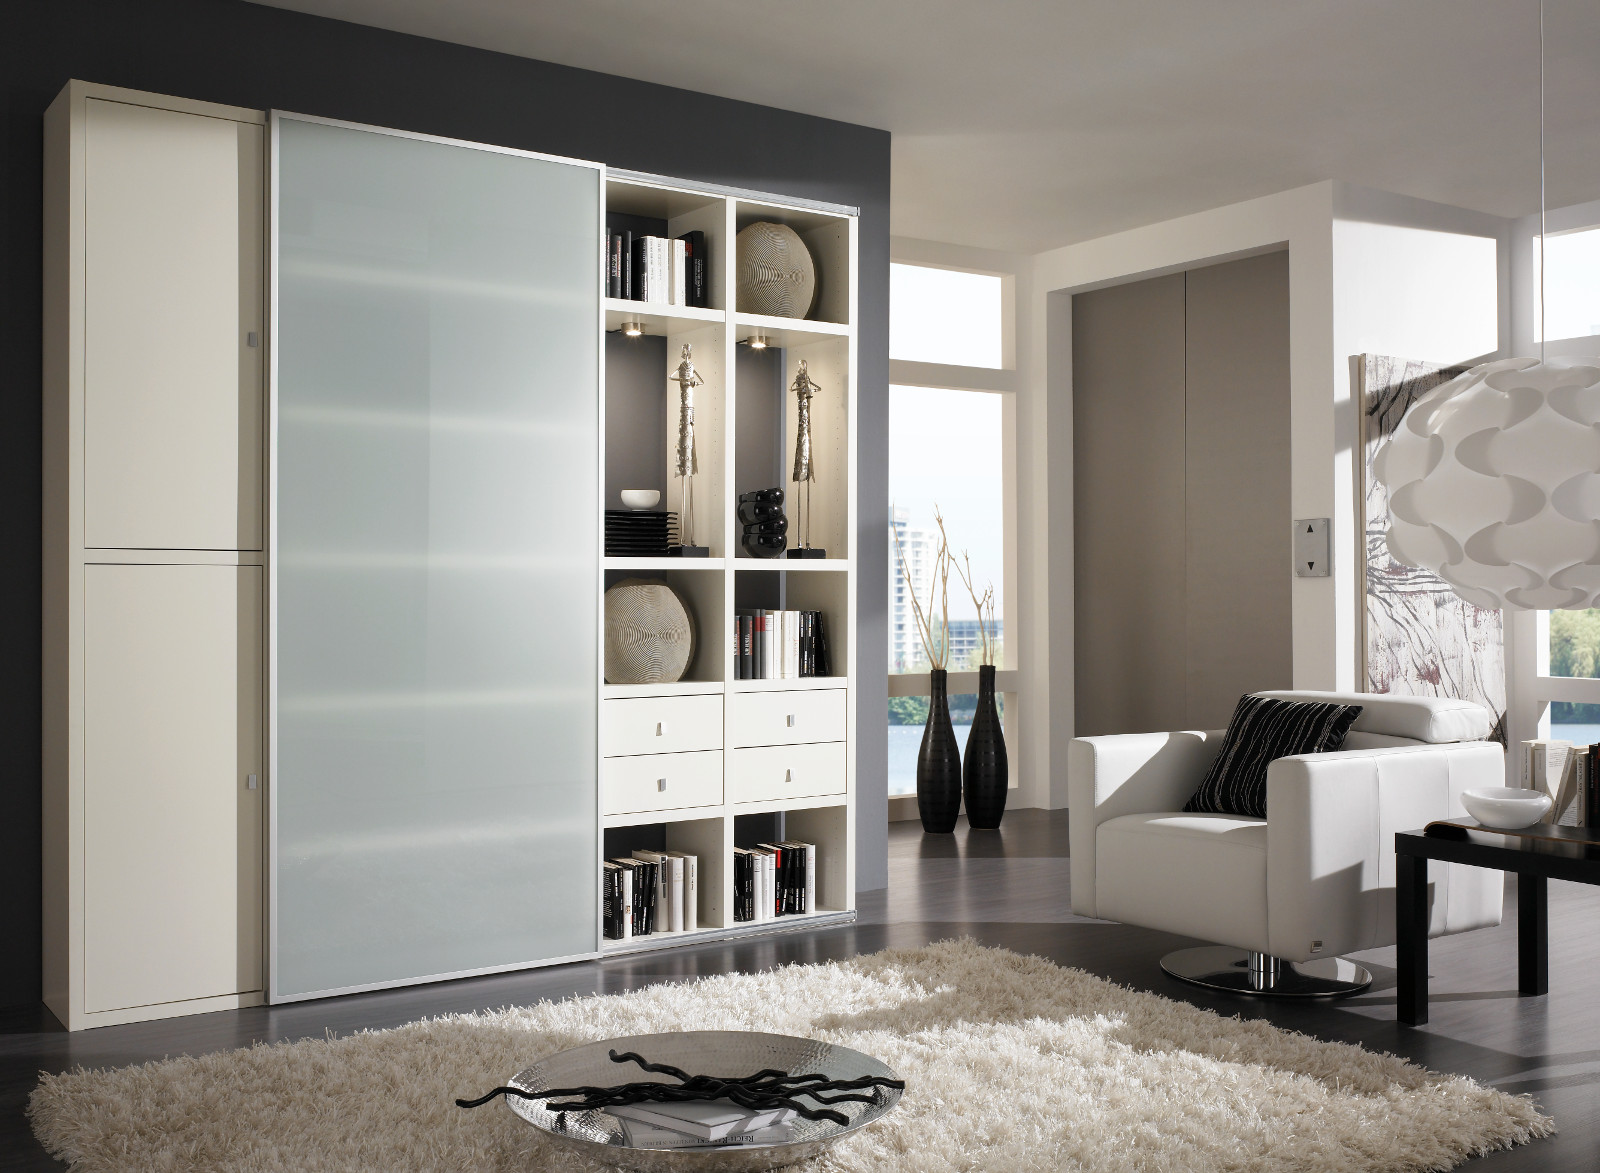 wohnwand b cherwand lack wei matt vitrinenf cher. Black Bedroom Furniture Sets. Home Design Ideas